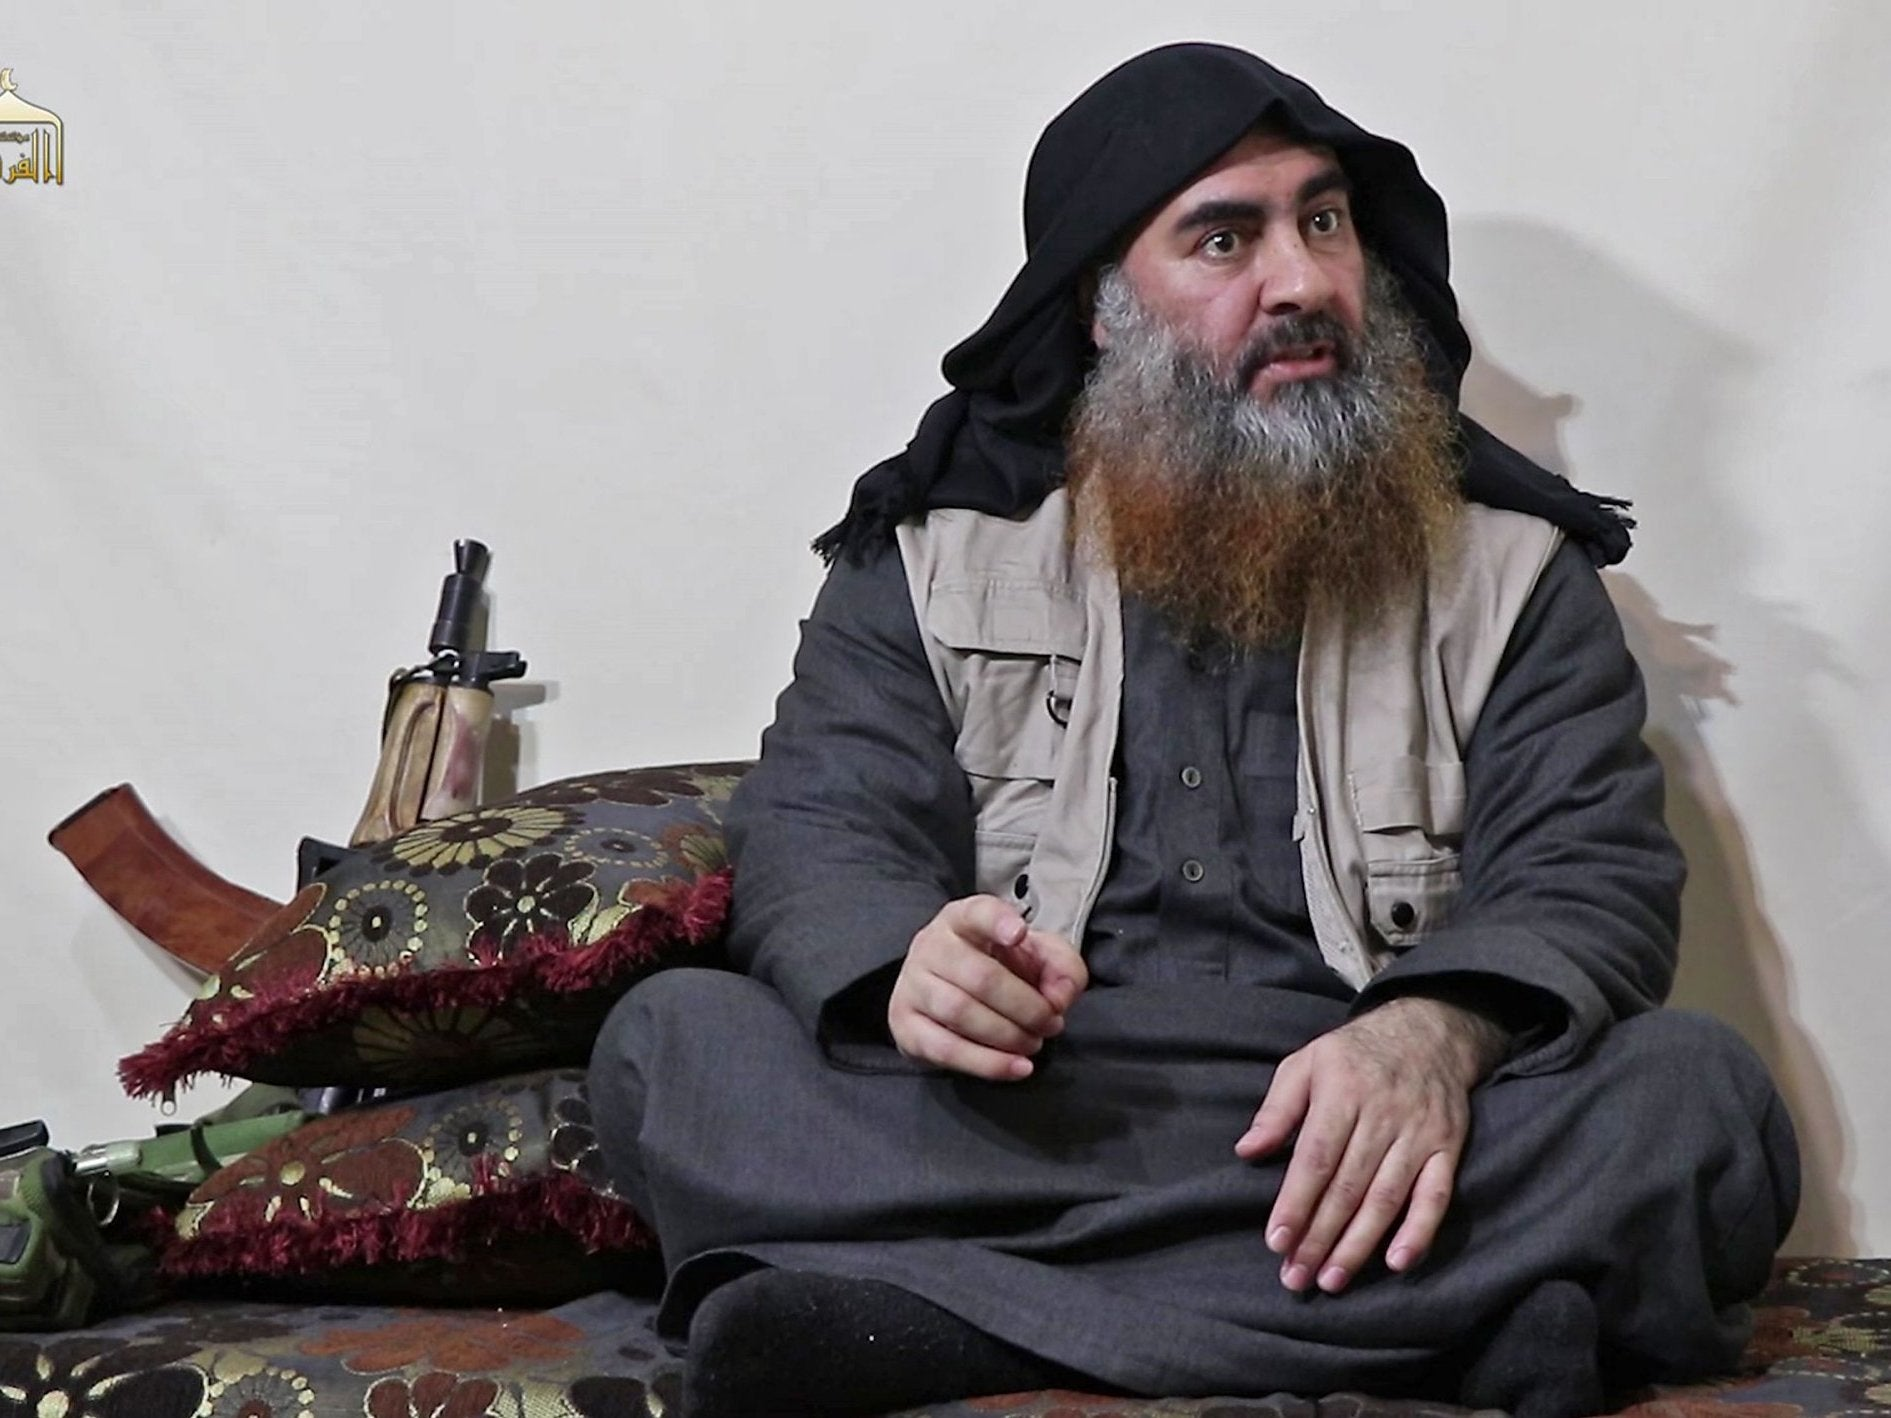 Abu Bakr al-Baghdadi: Isis leader killed in northern Syria, reports say